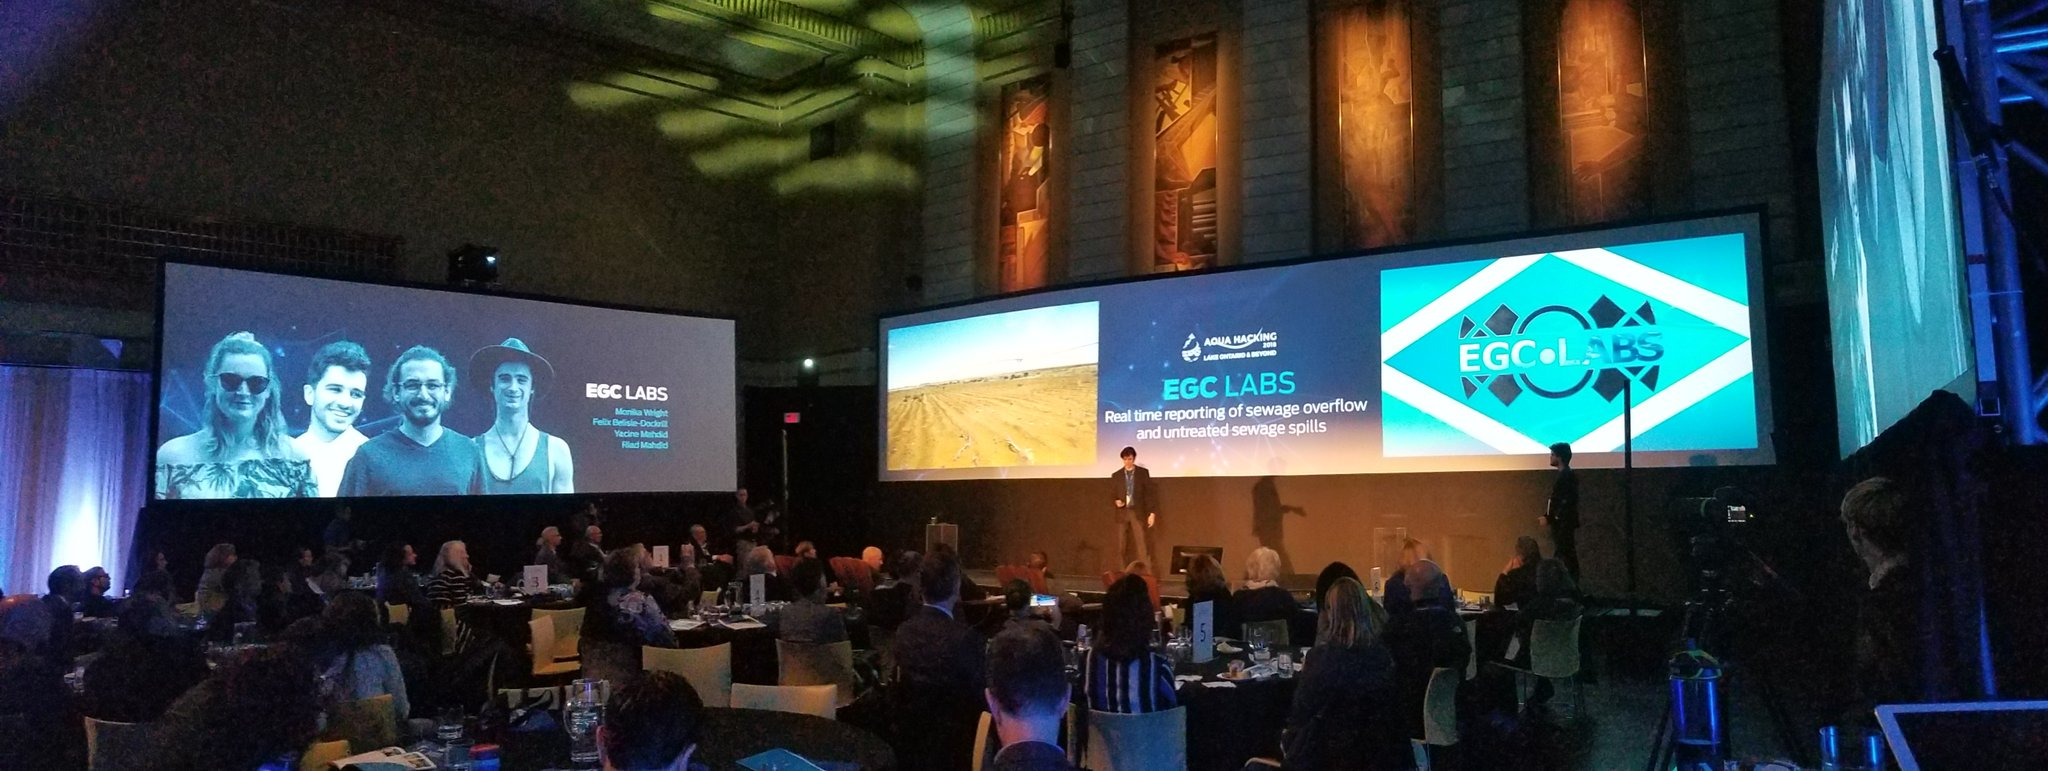 The scene at Aquahacking with Felix presenting and Yacine doing nothing